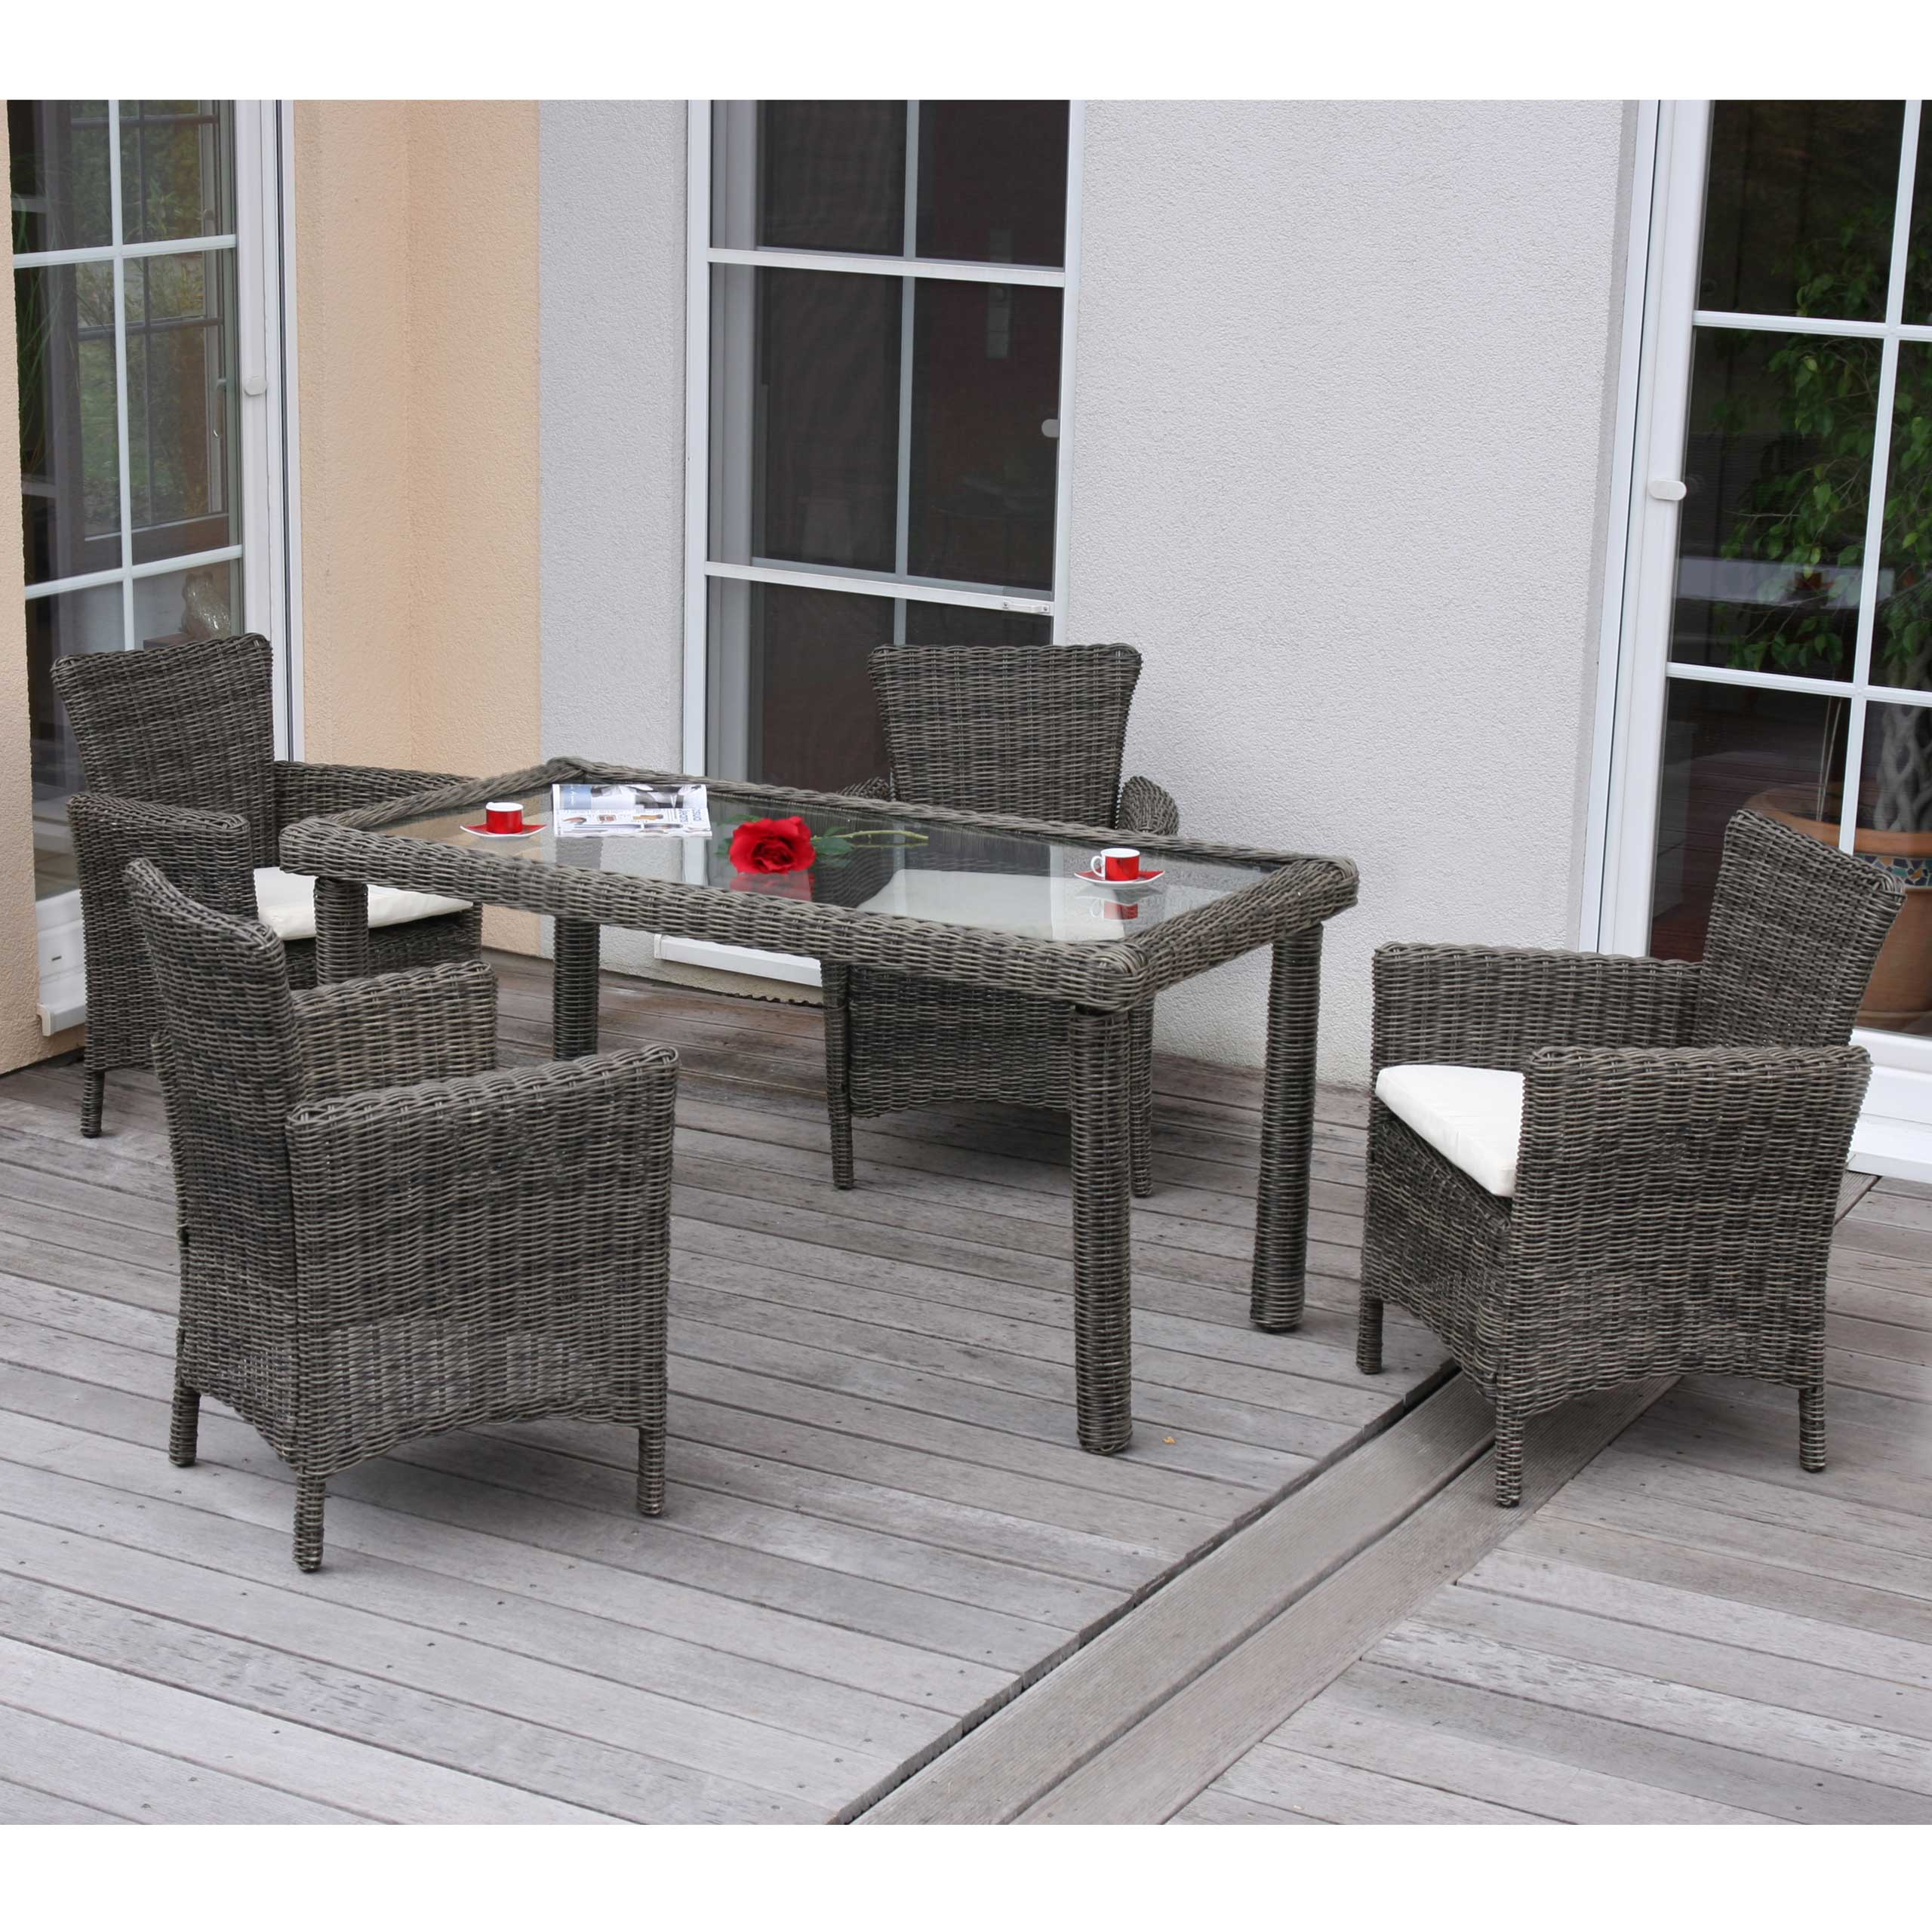 luxus poly rattan garten garnitur esszimmer set romv 4 sessel tisch naturgrau ebay. Black Bedroom Furniture Sets. Home Design Ideas